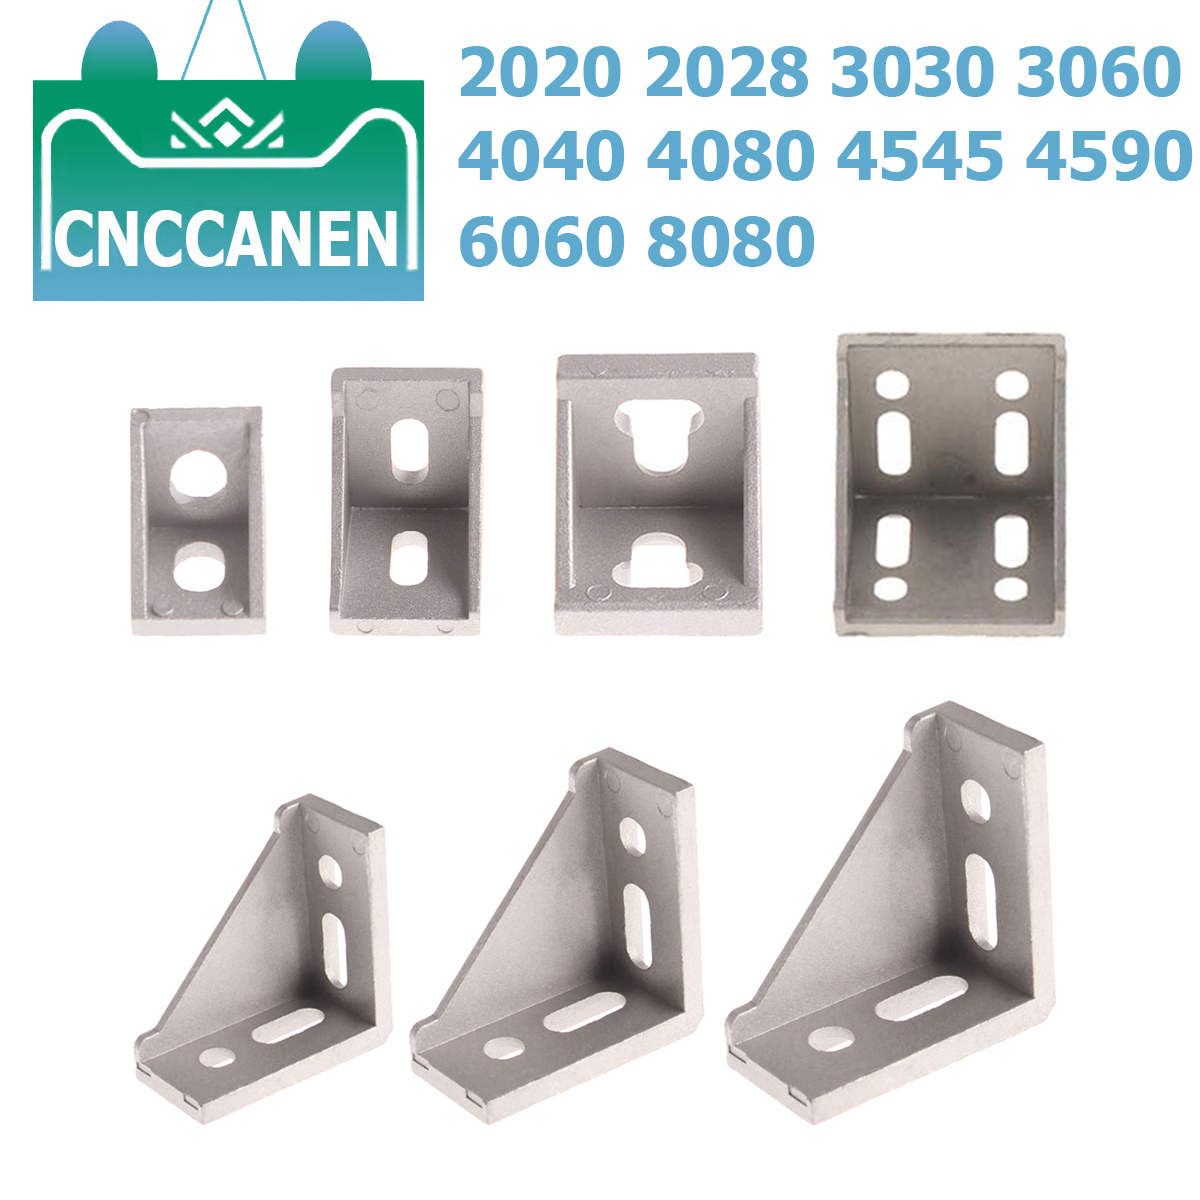 2/5PCS 2020 2028 <font><b>3030</b></font> 4040 Corner Bracket Fitting Angle L Connector Bracket Fastener for Aluminium Profile CNC 4545 6060 8080 image